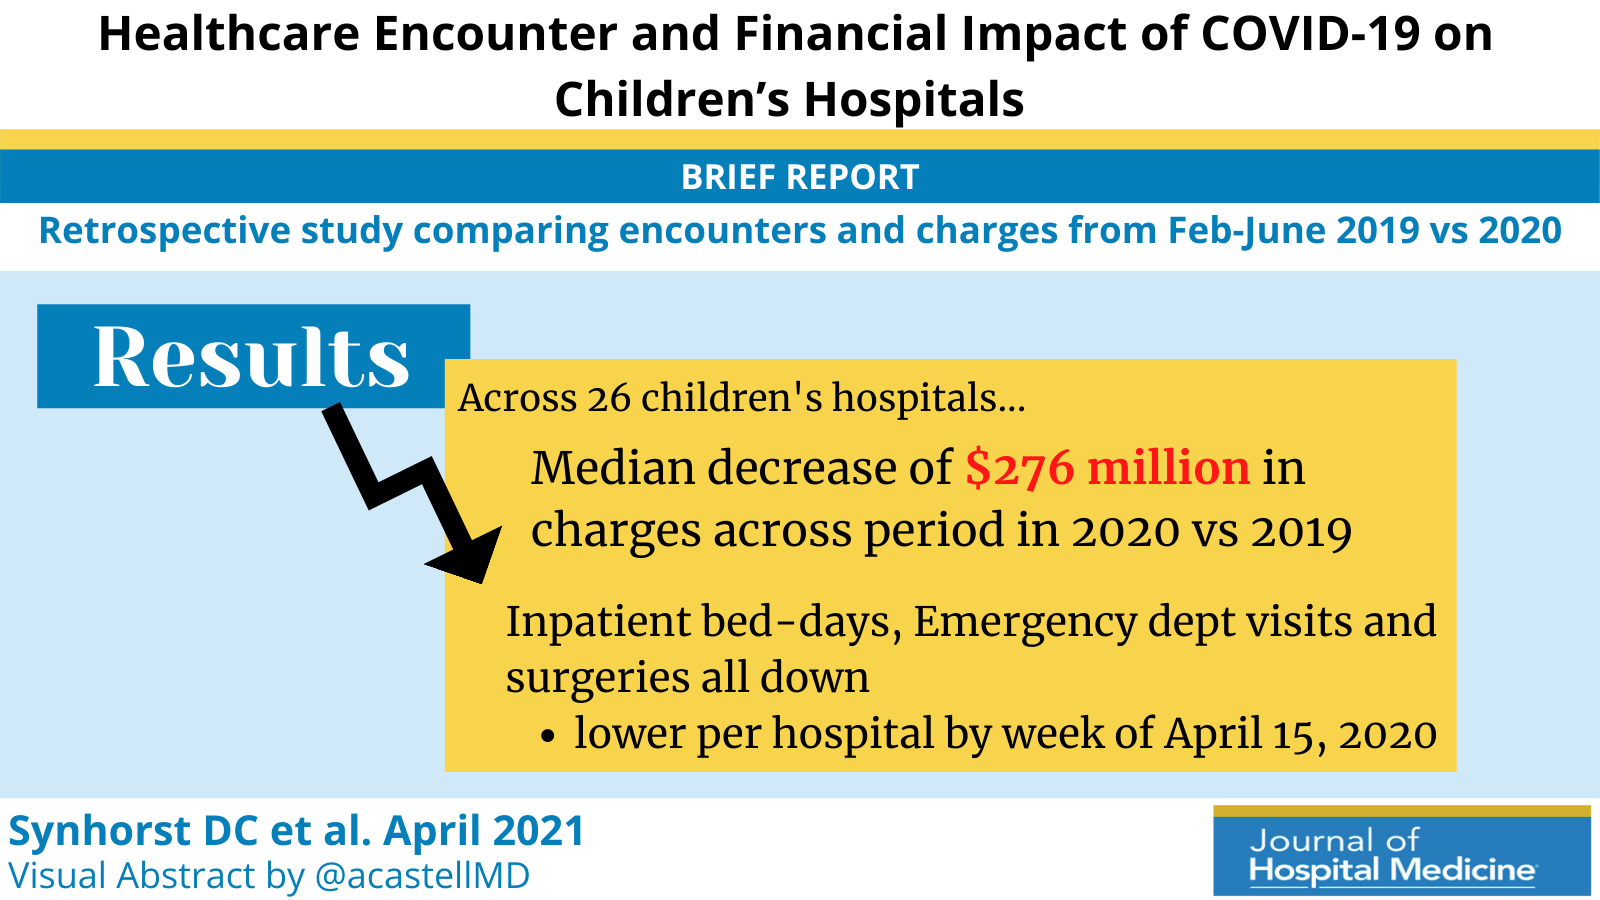 Healthcare Encounter and Financial Impact of COVID-19 on Children's Hospitals